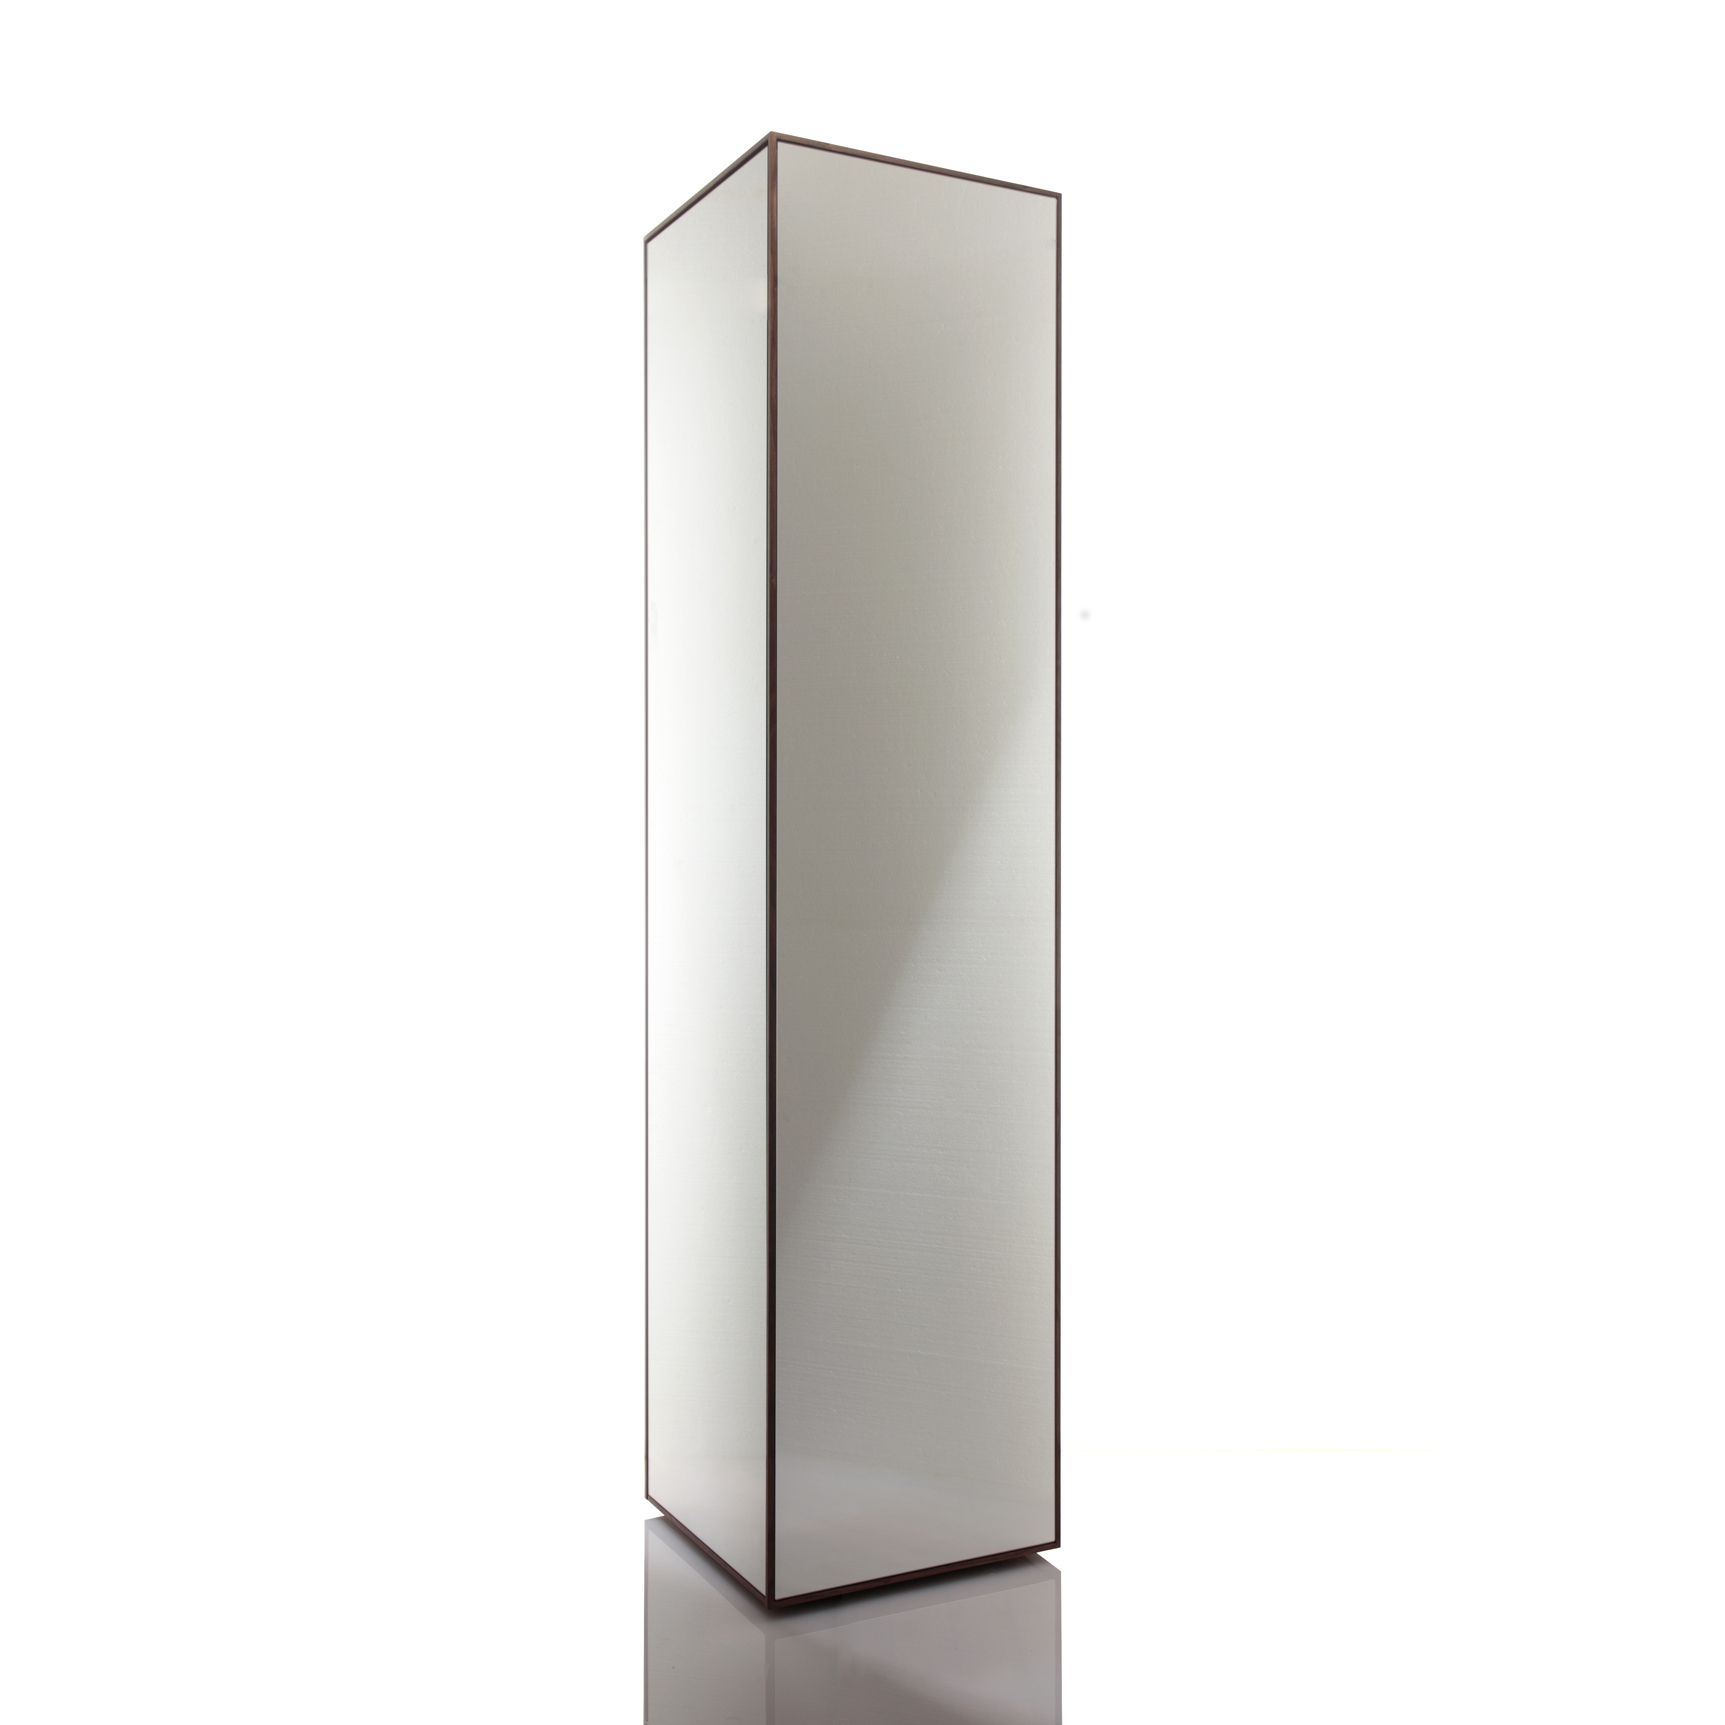 FRAMES - is a simple three-dimensional mirror with inner storage and ...